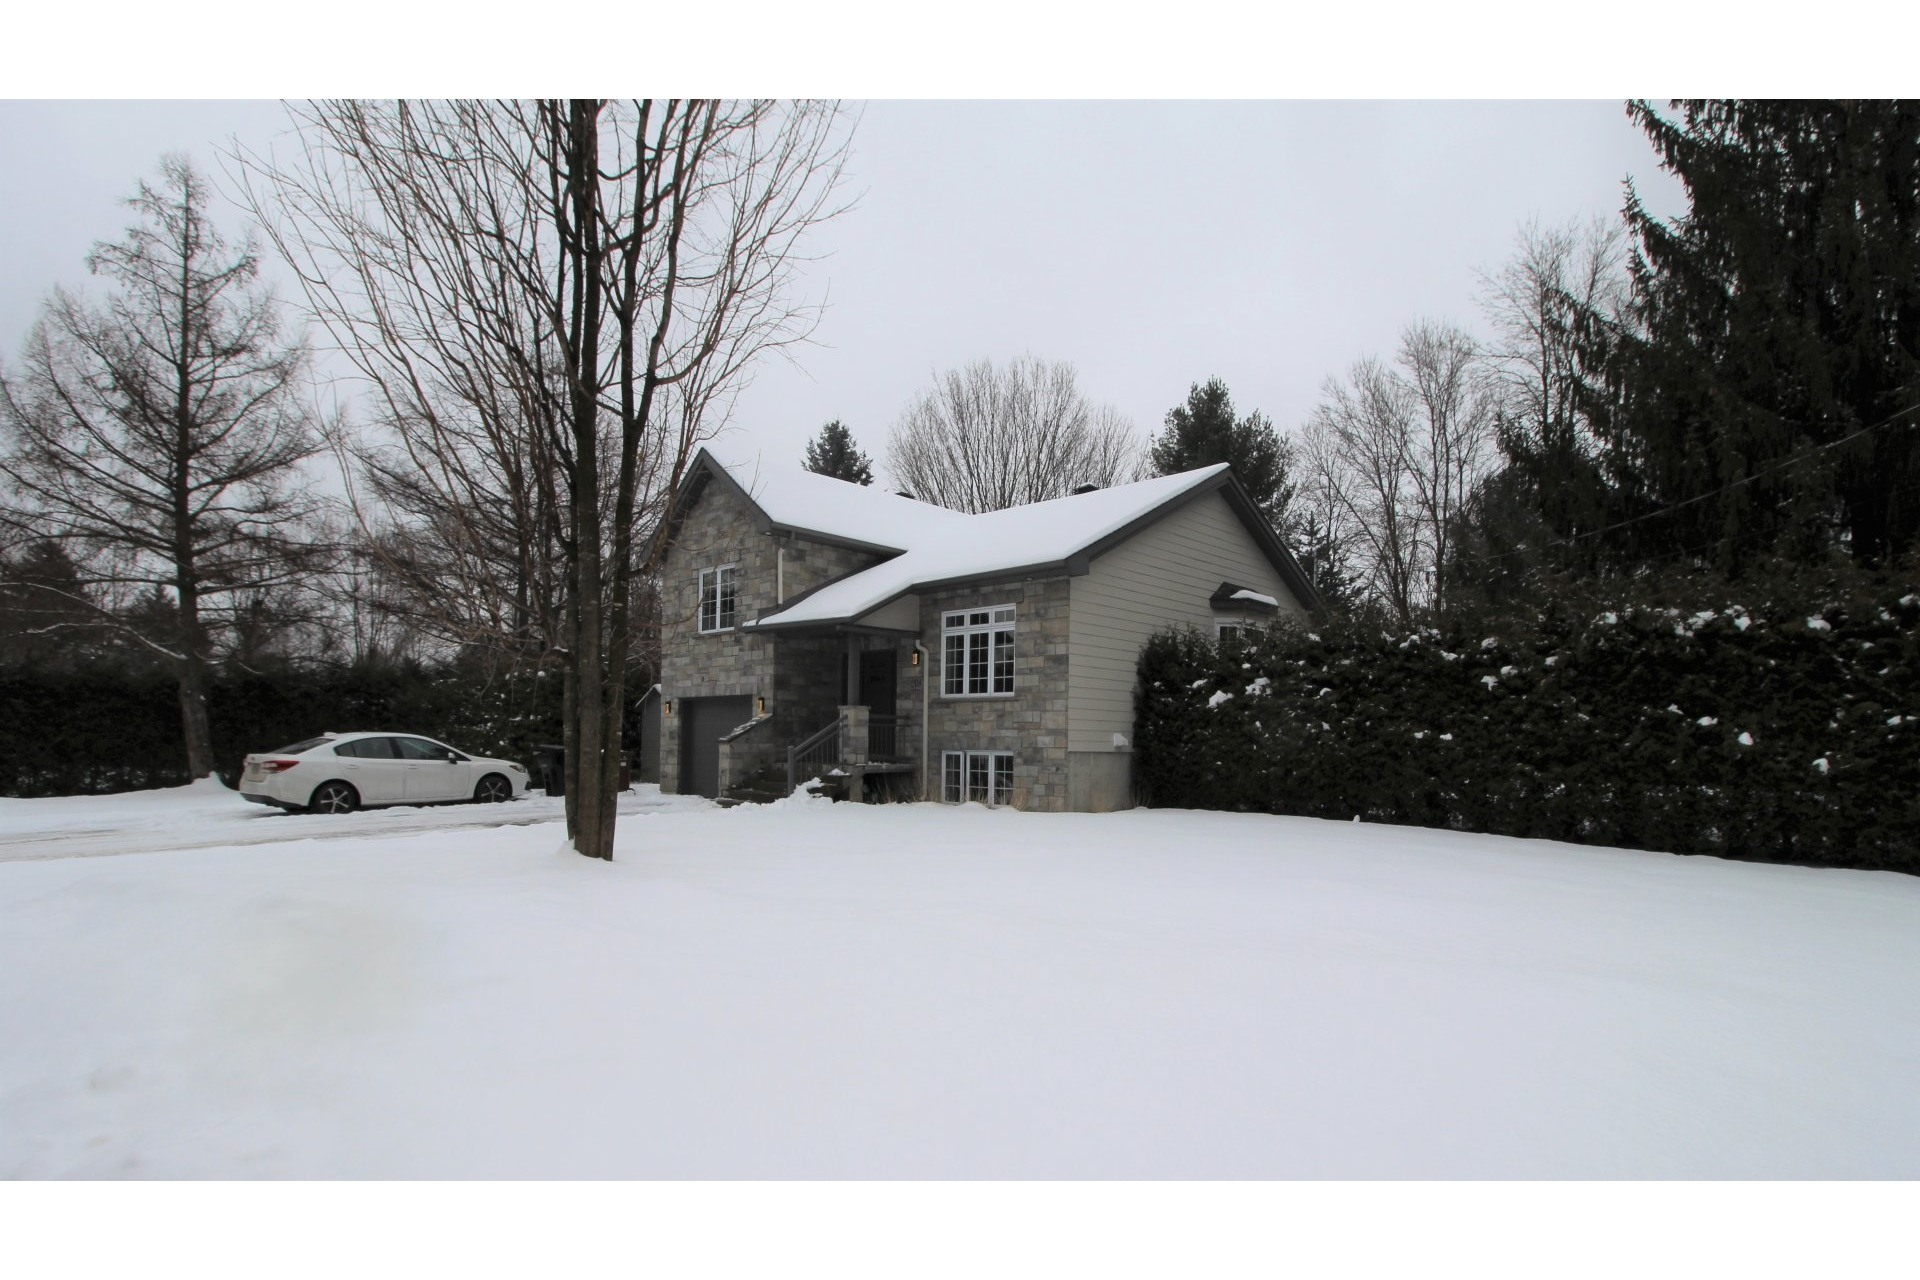 House For sale Notre-Dame-des-Prairies - 13 rooms